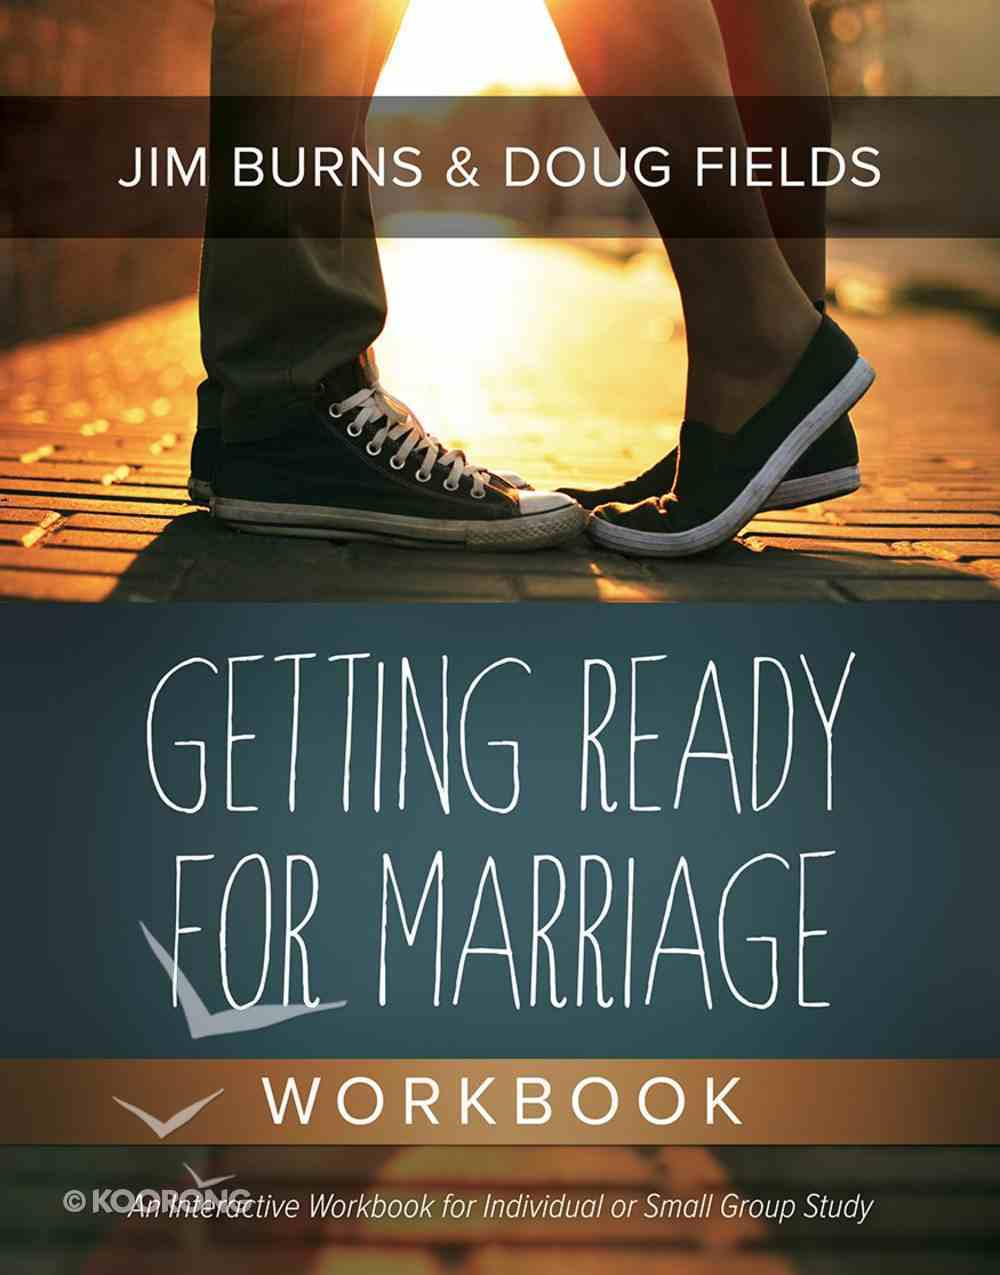 Getting Ready For Marriage Workbook eBook